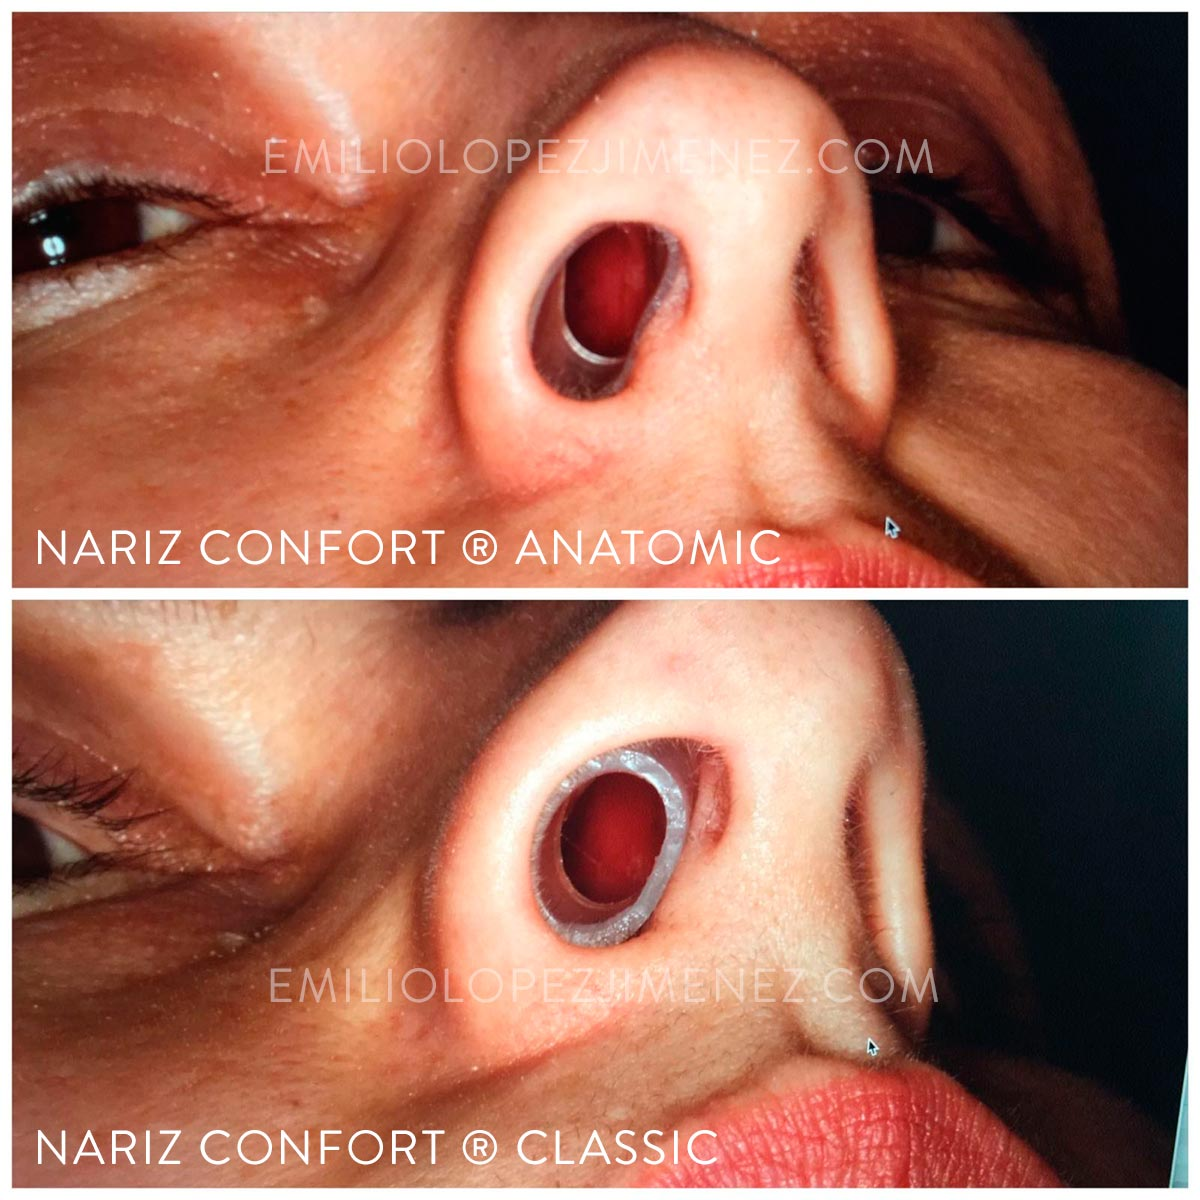 Nariz Confort Classic vs Anatomic